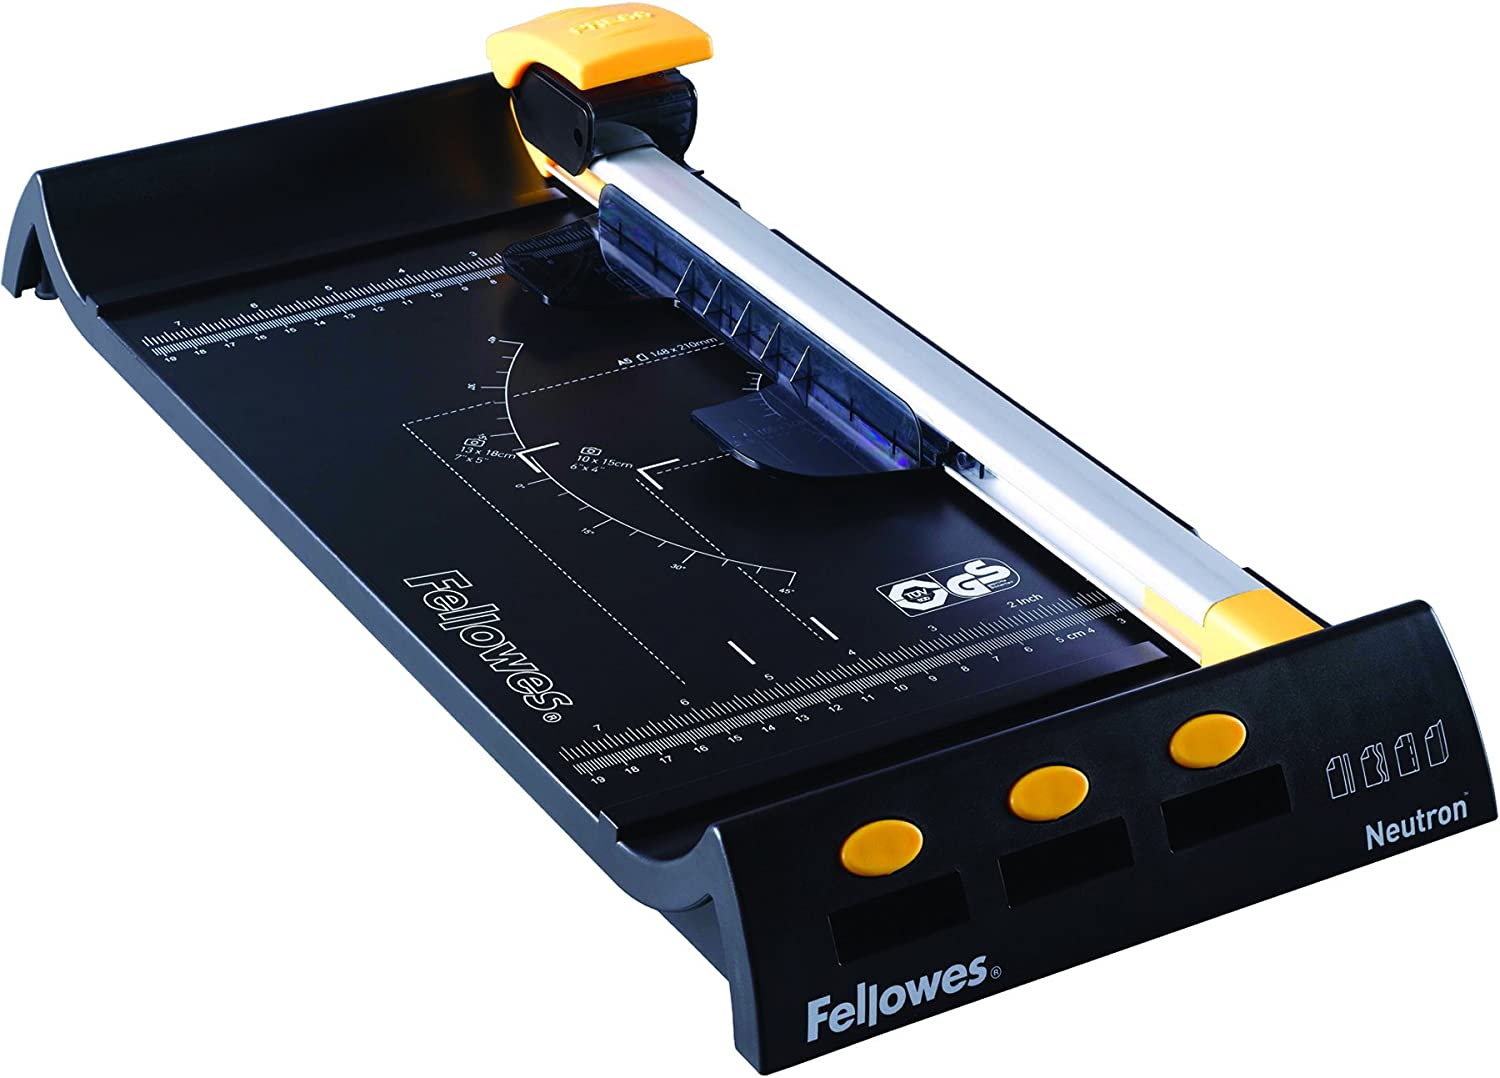 Max Ranking integrated 1st place 67% OFF Fellowes Neutron A4 Paper Trimmer